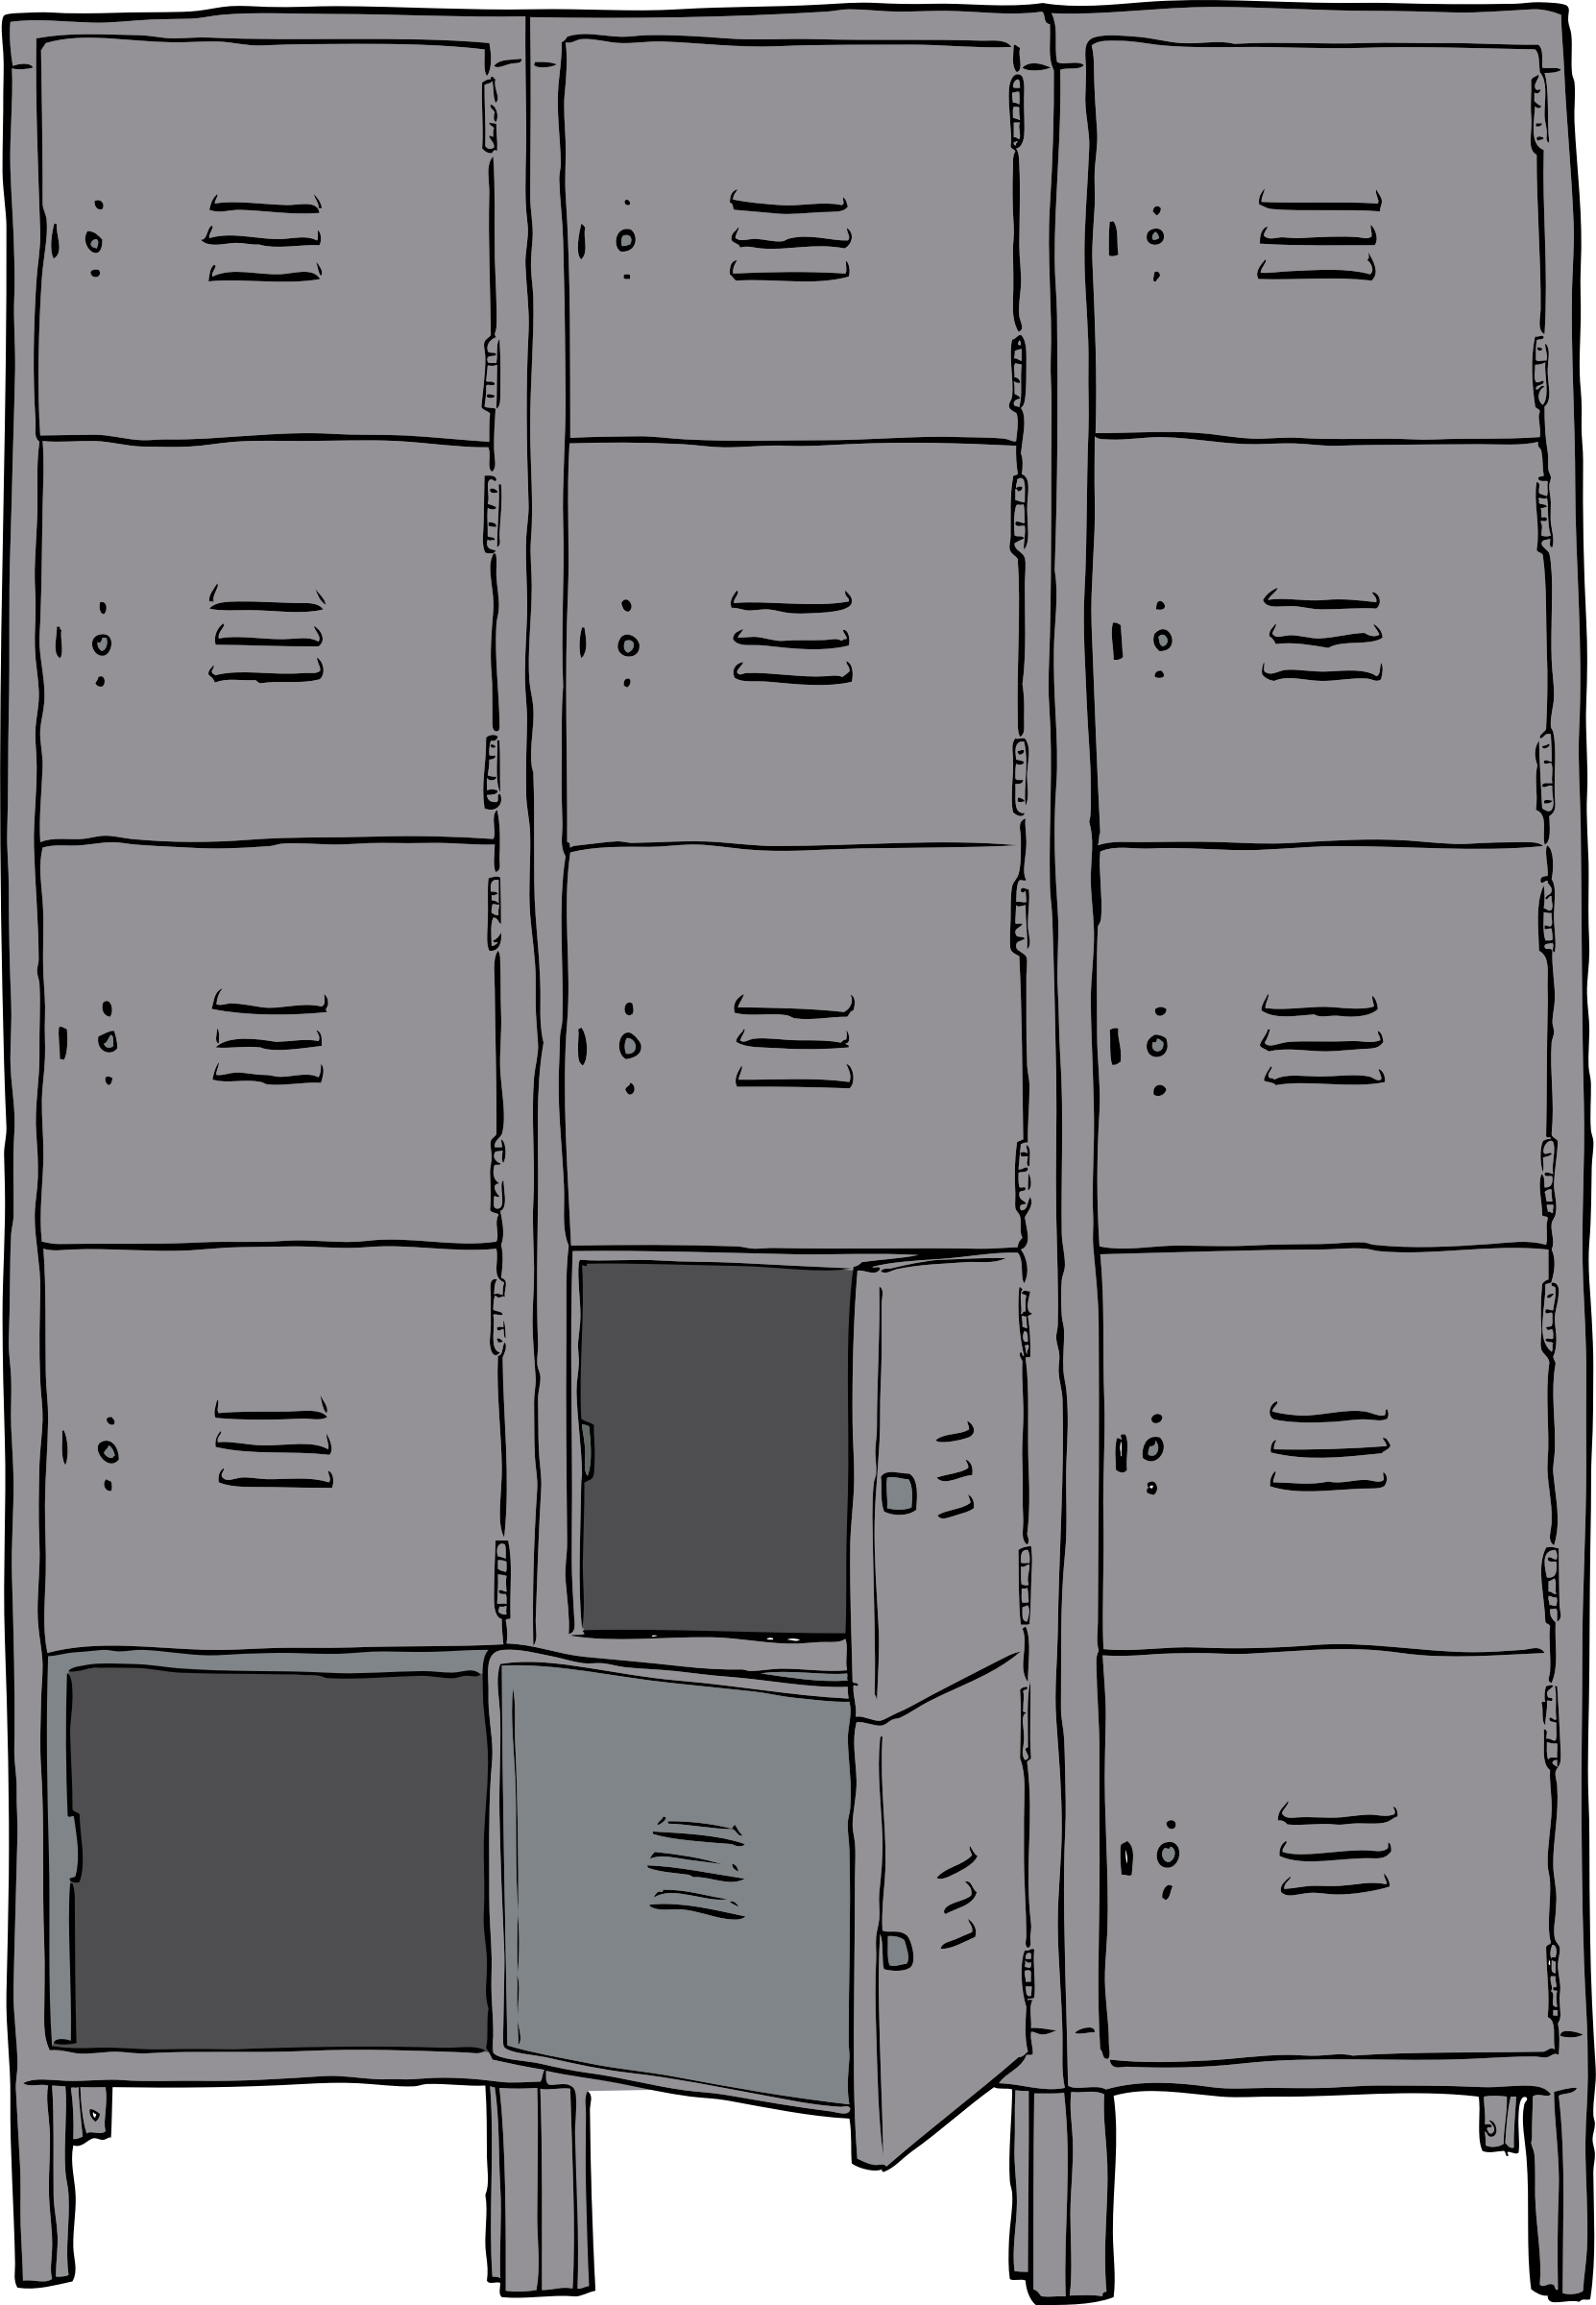 lockers by SteveLambert